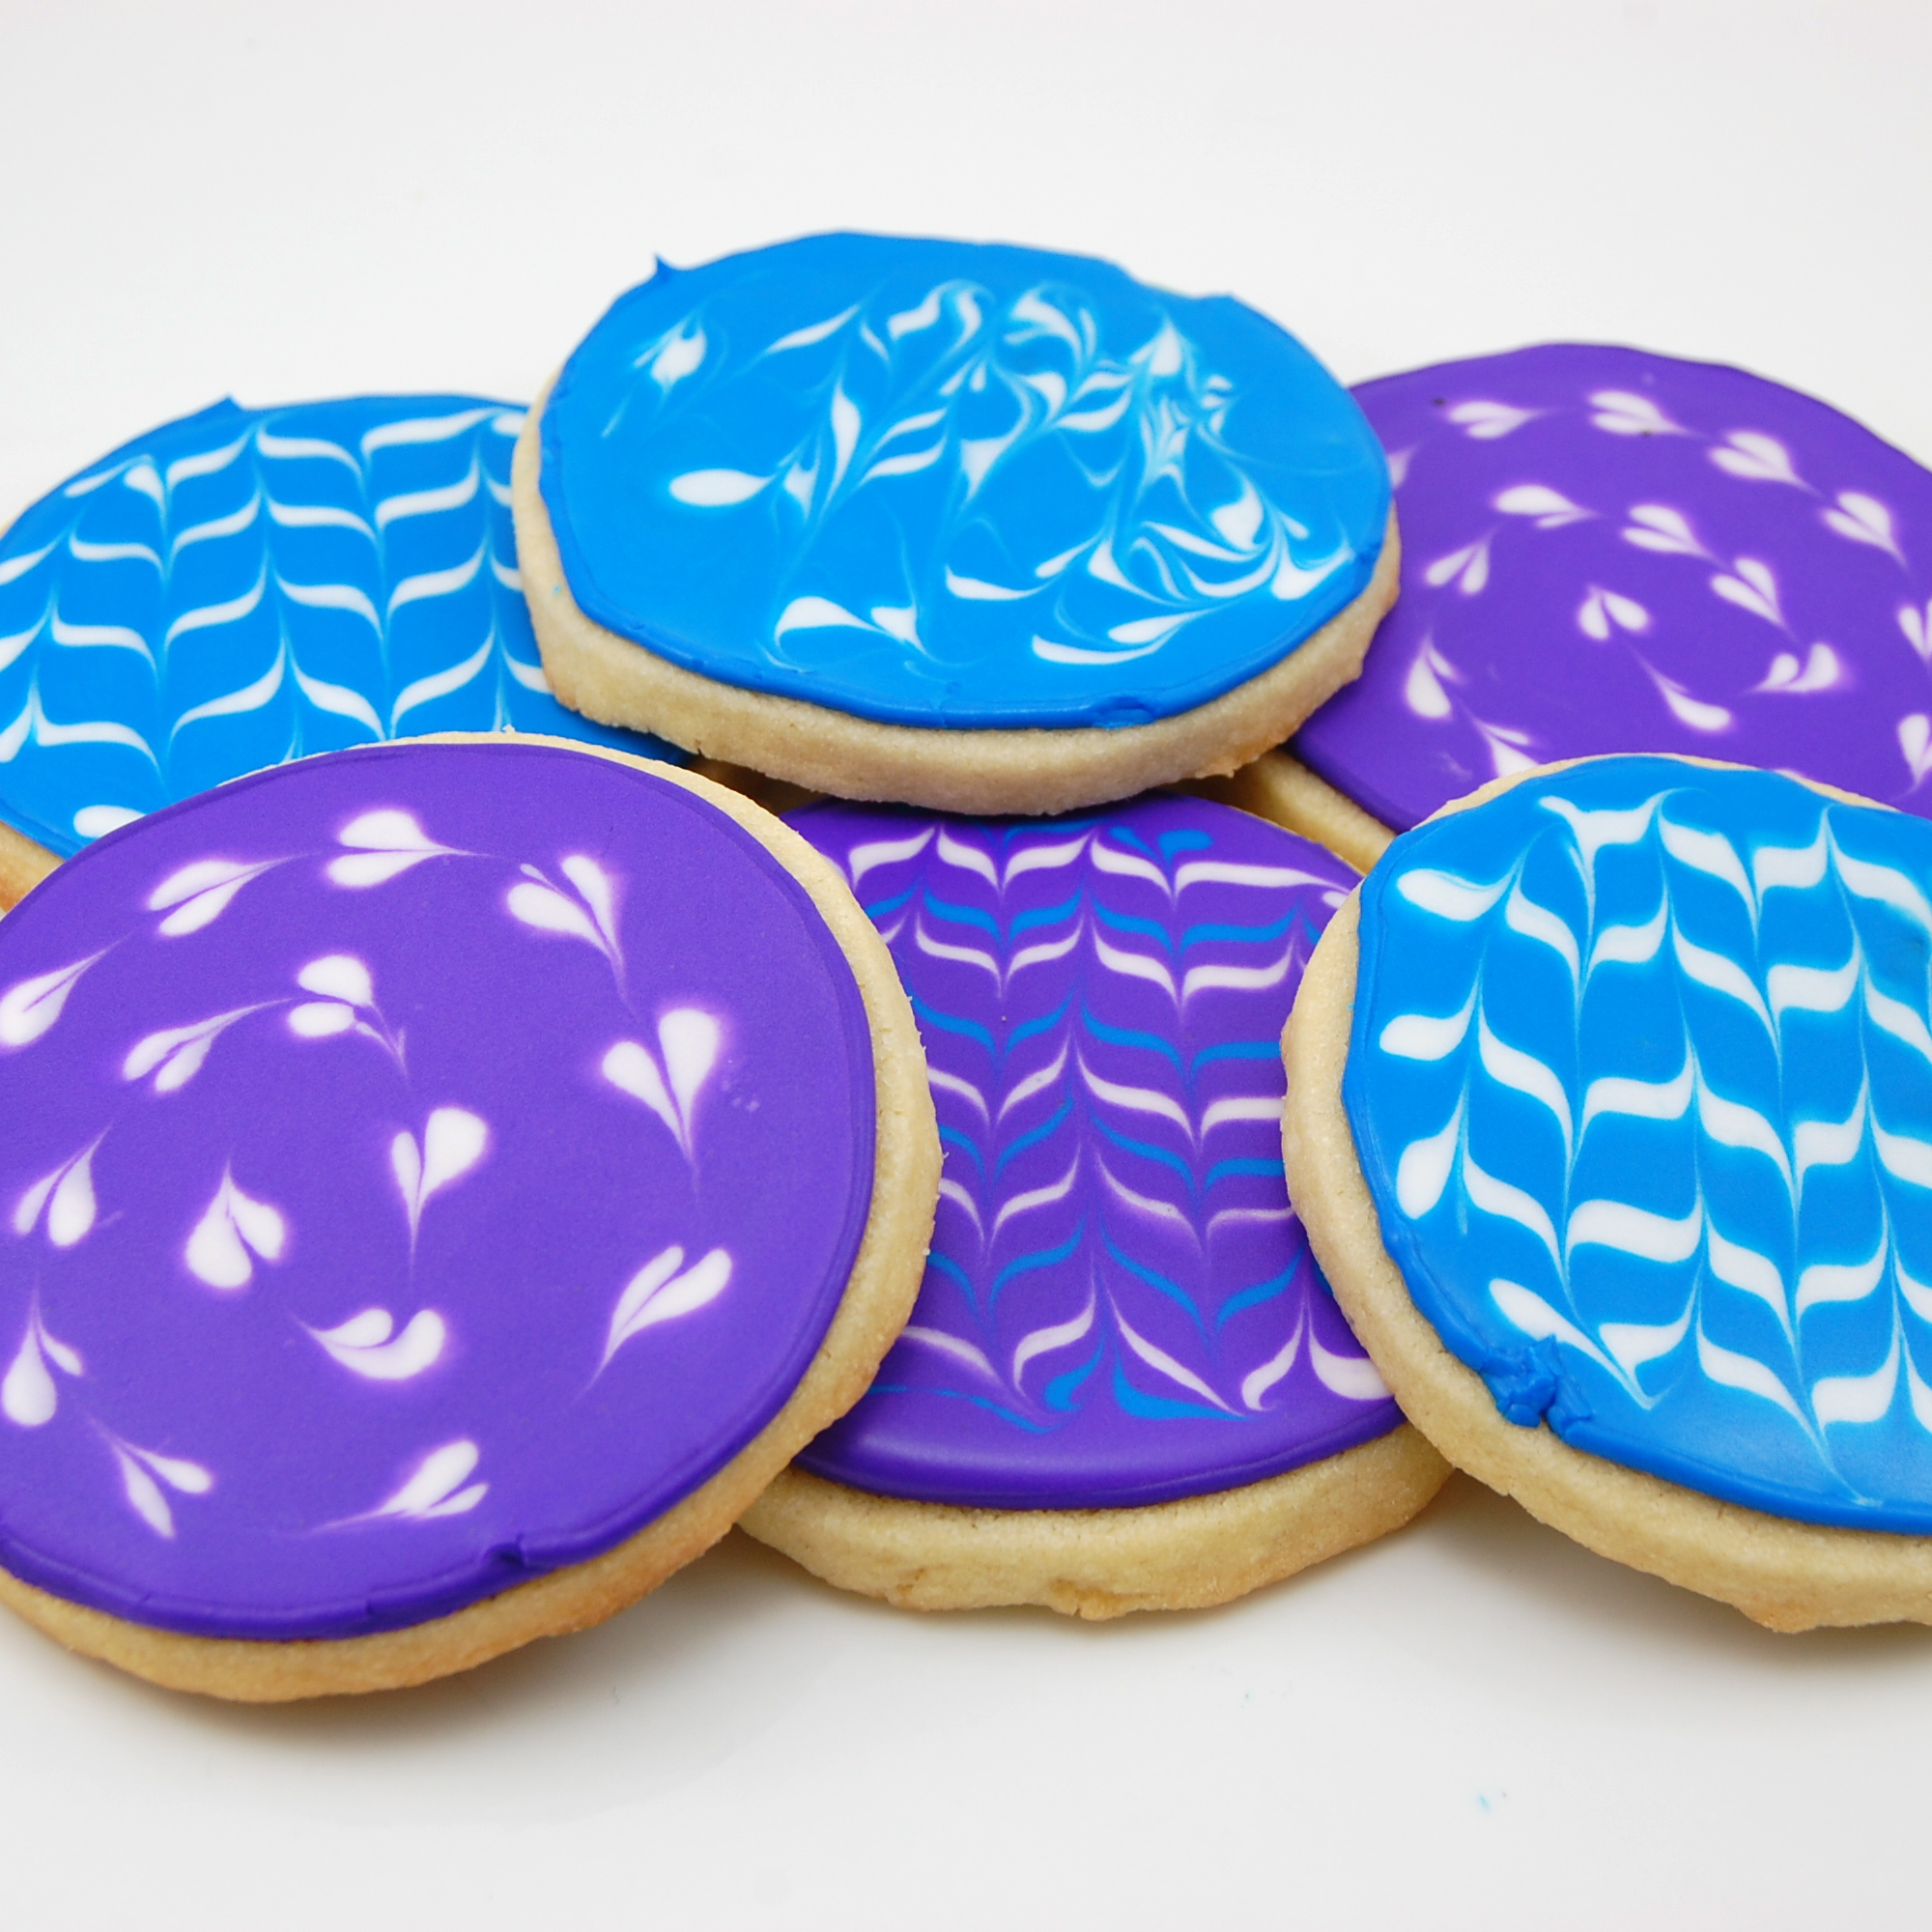 ... with royal icing royal icing is so beautiful to use on cutout cookies